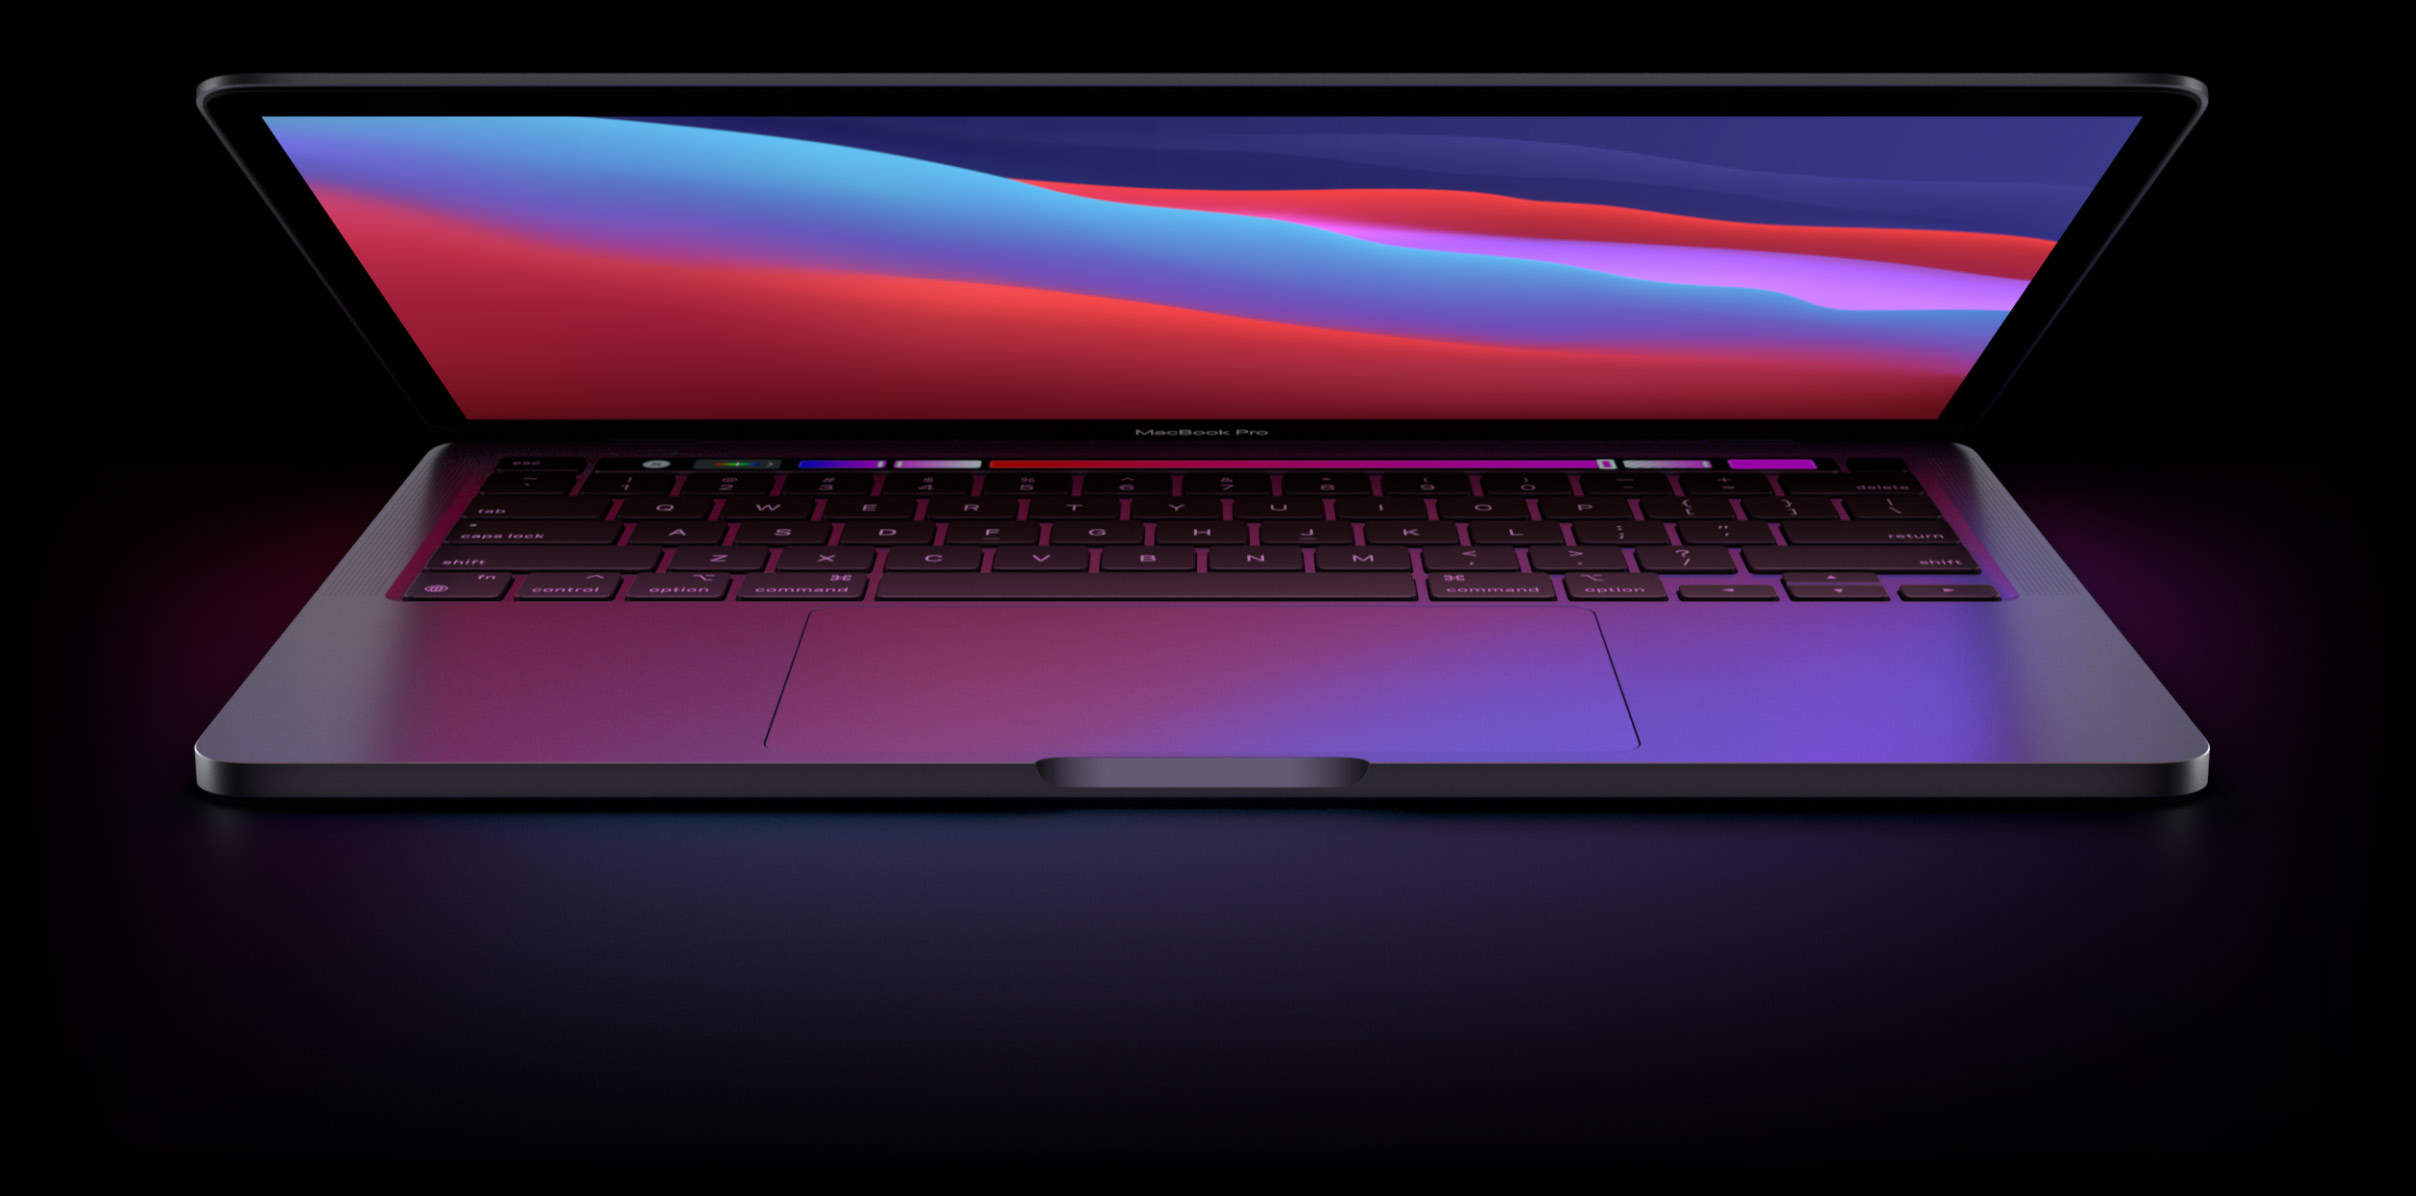 Promotional Apple graphic depicting Apple silicon MacBook Pro with the lid half open